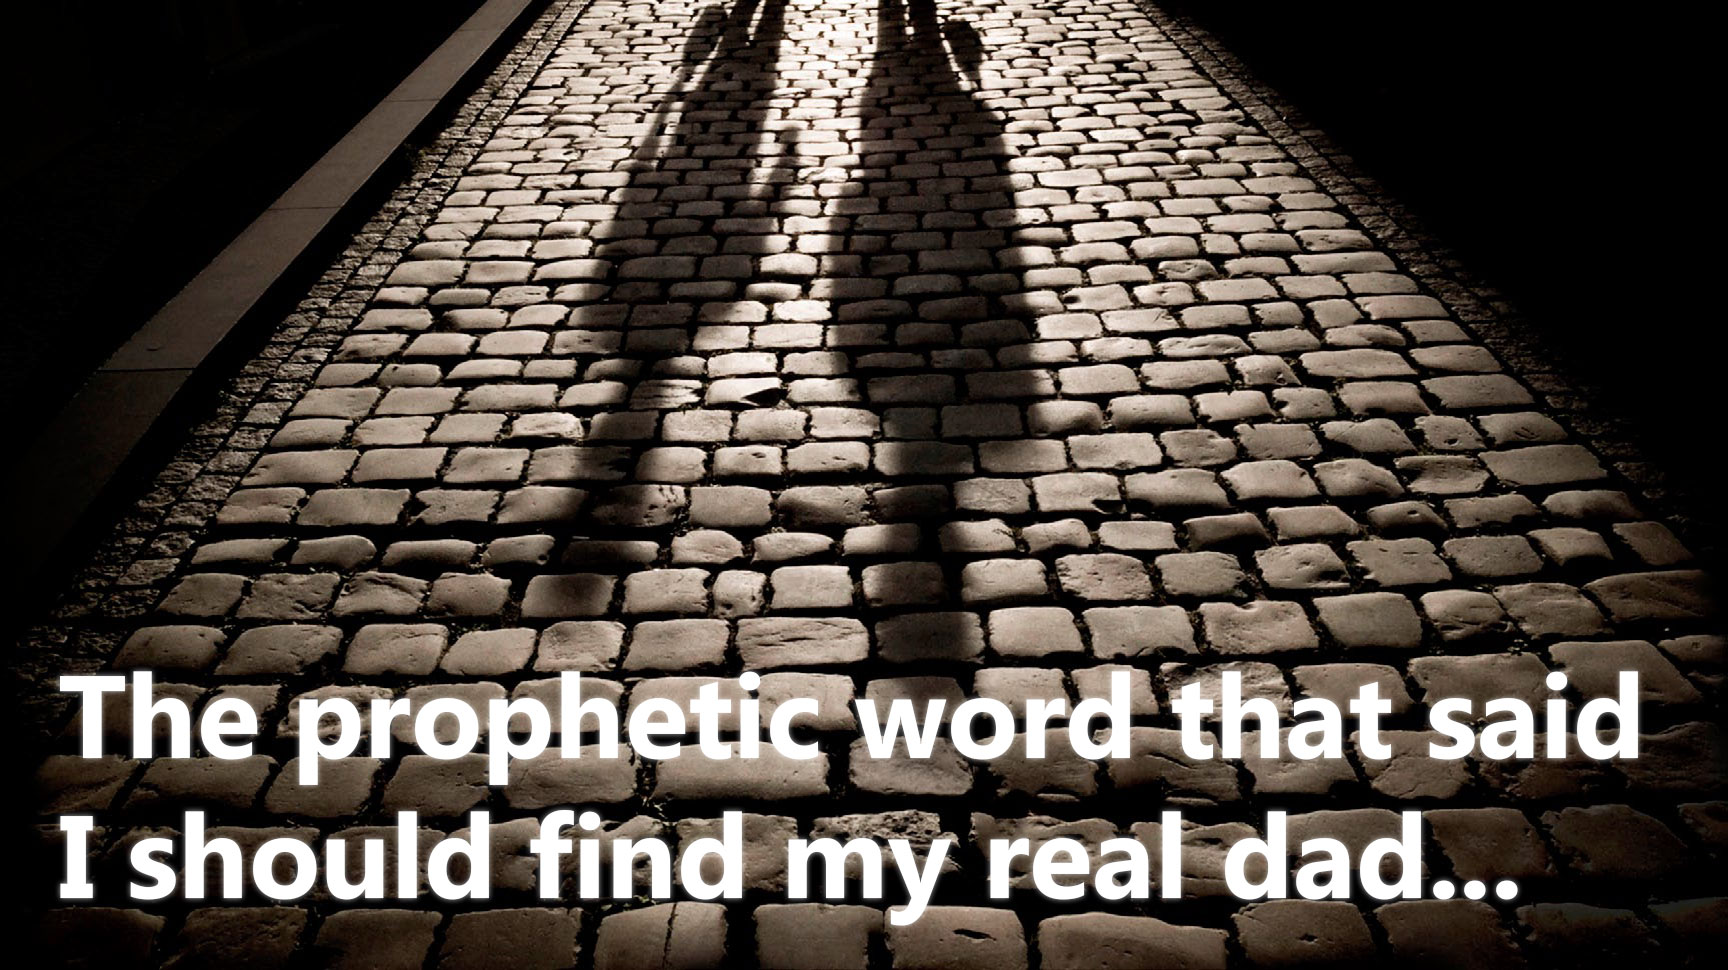 The Prophetic Word That Said I Should Find My Real Dad